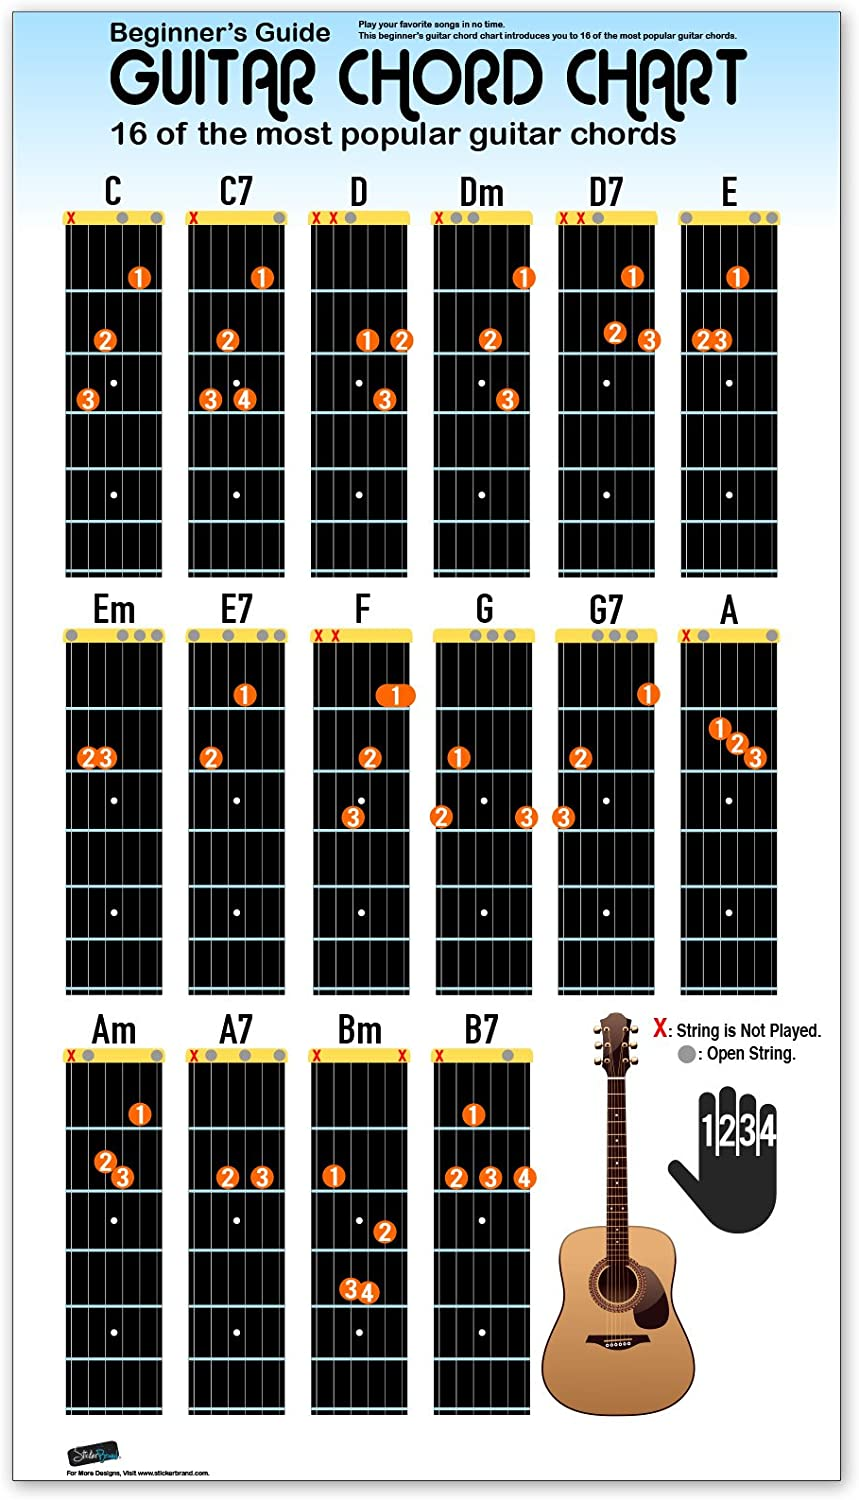 Guitar Chord Chart Poster for Beginners. 15 Popular Chords Guide. Perfect  for Students and Teachers. Educational Handy Guide Chart Print for Guitar  ...